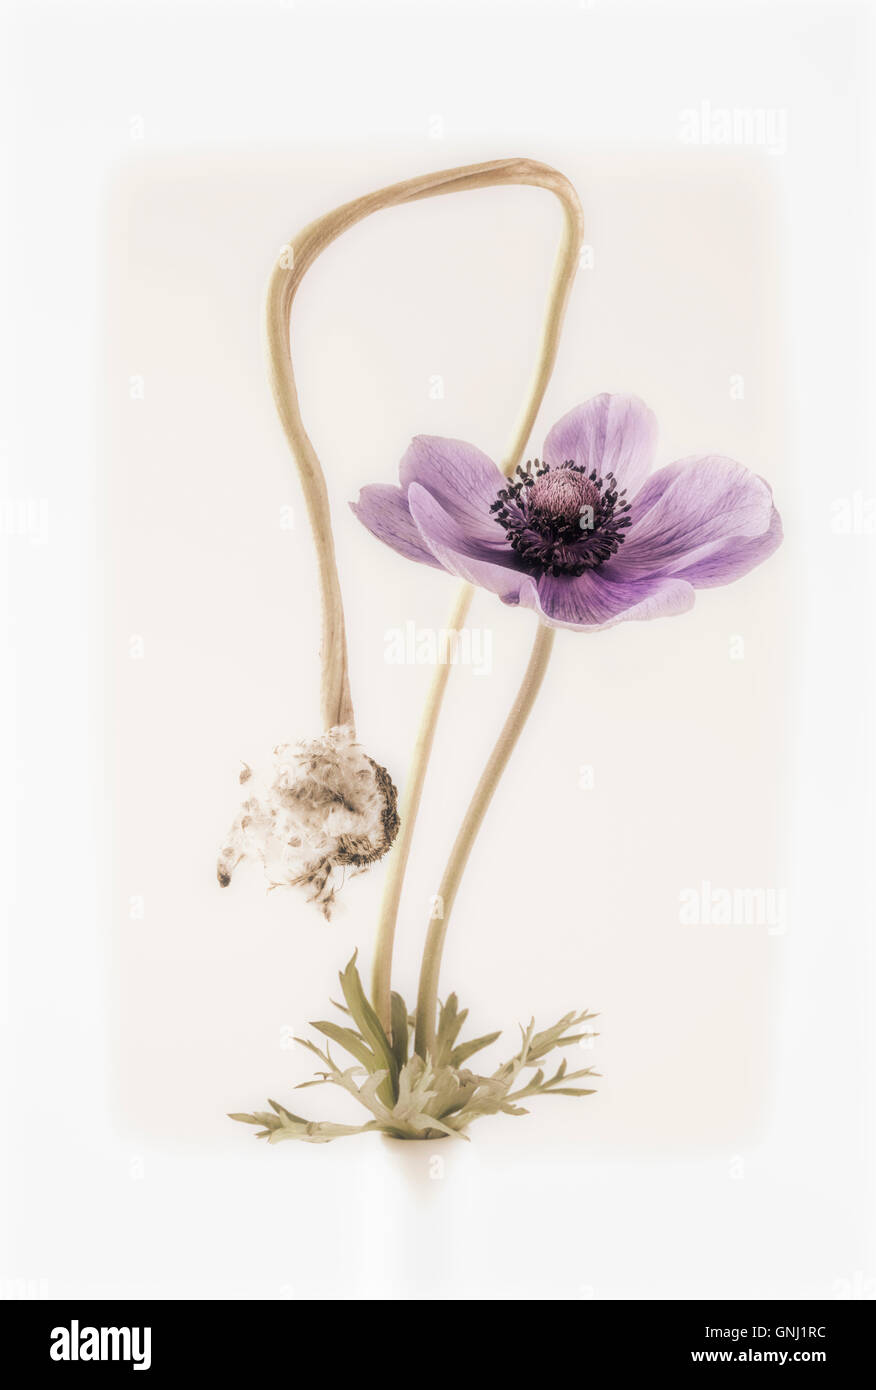 Anemone and Anemone Seed head - Stock Image